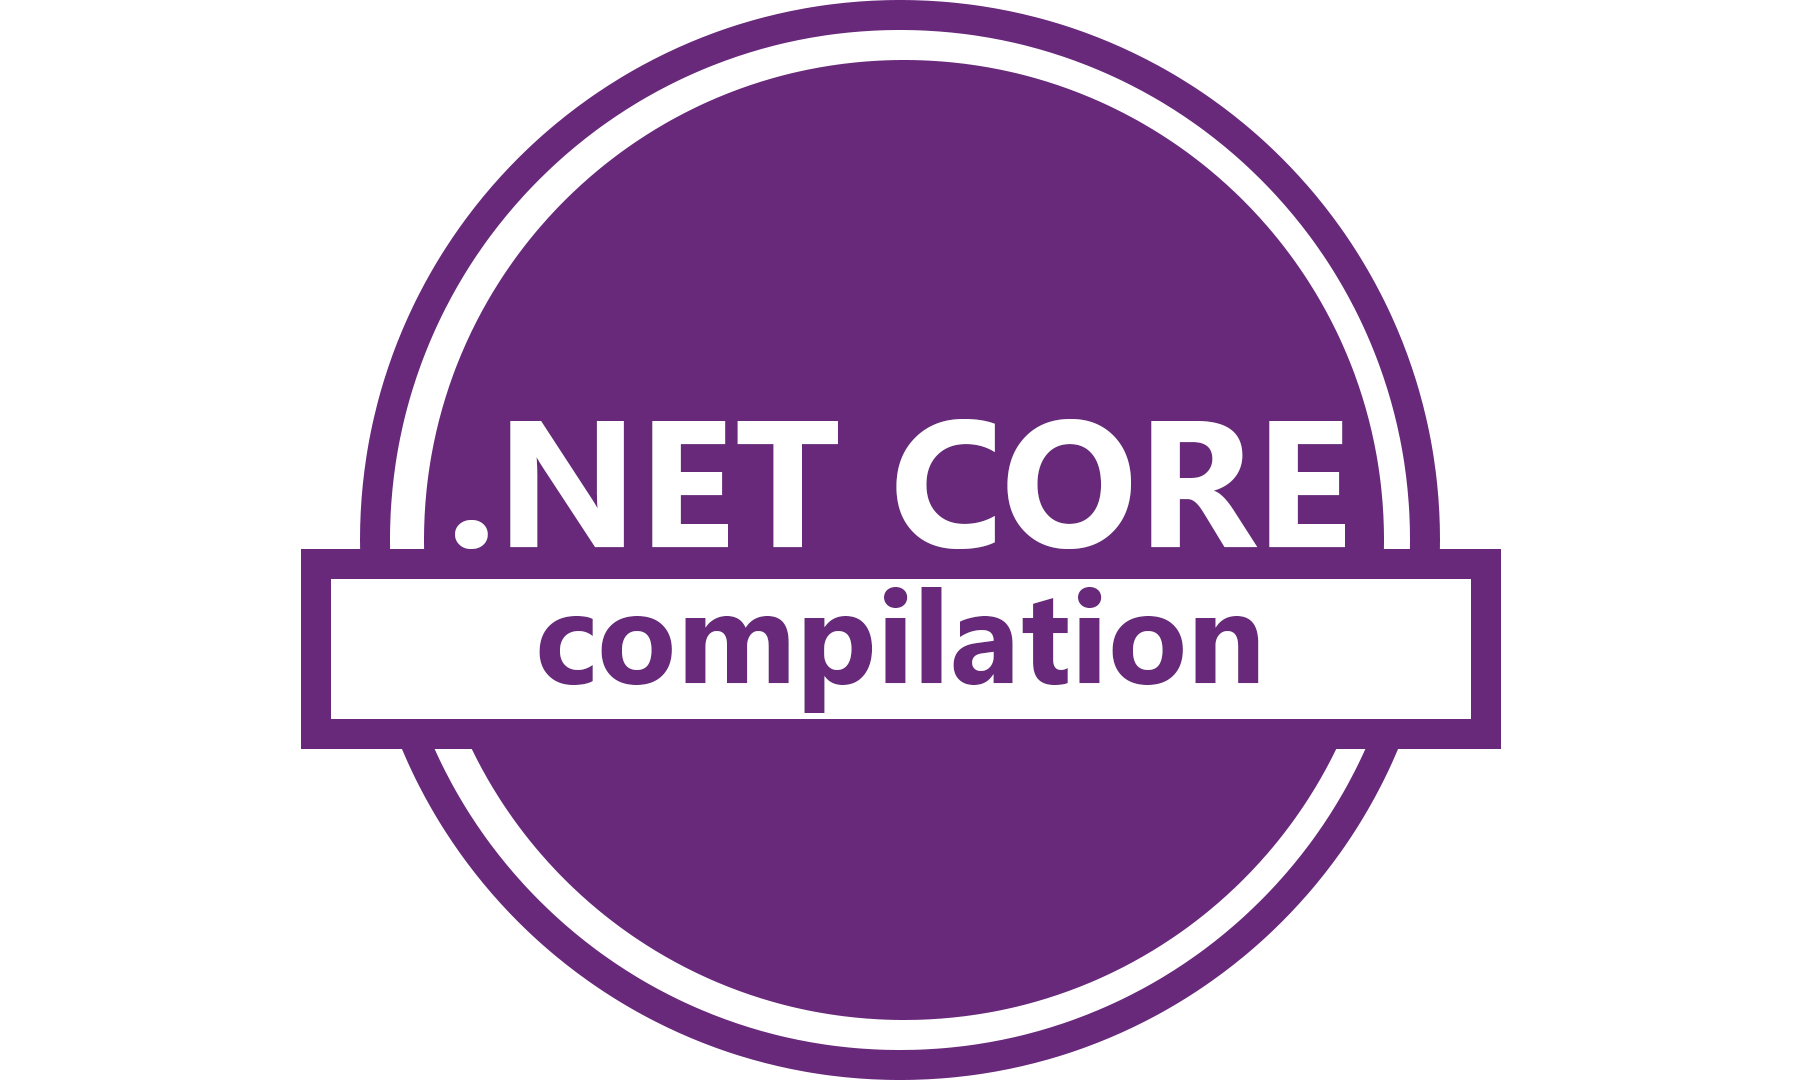 compilation in net core